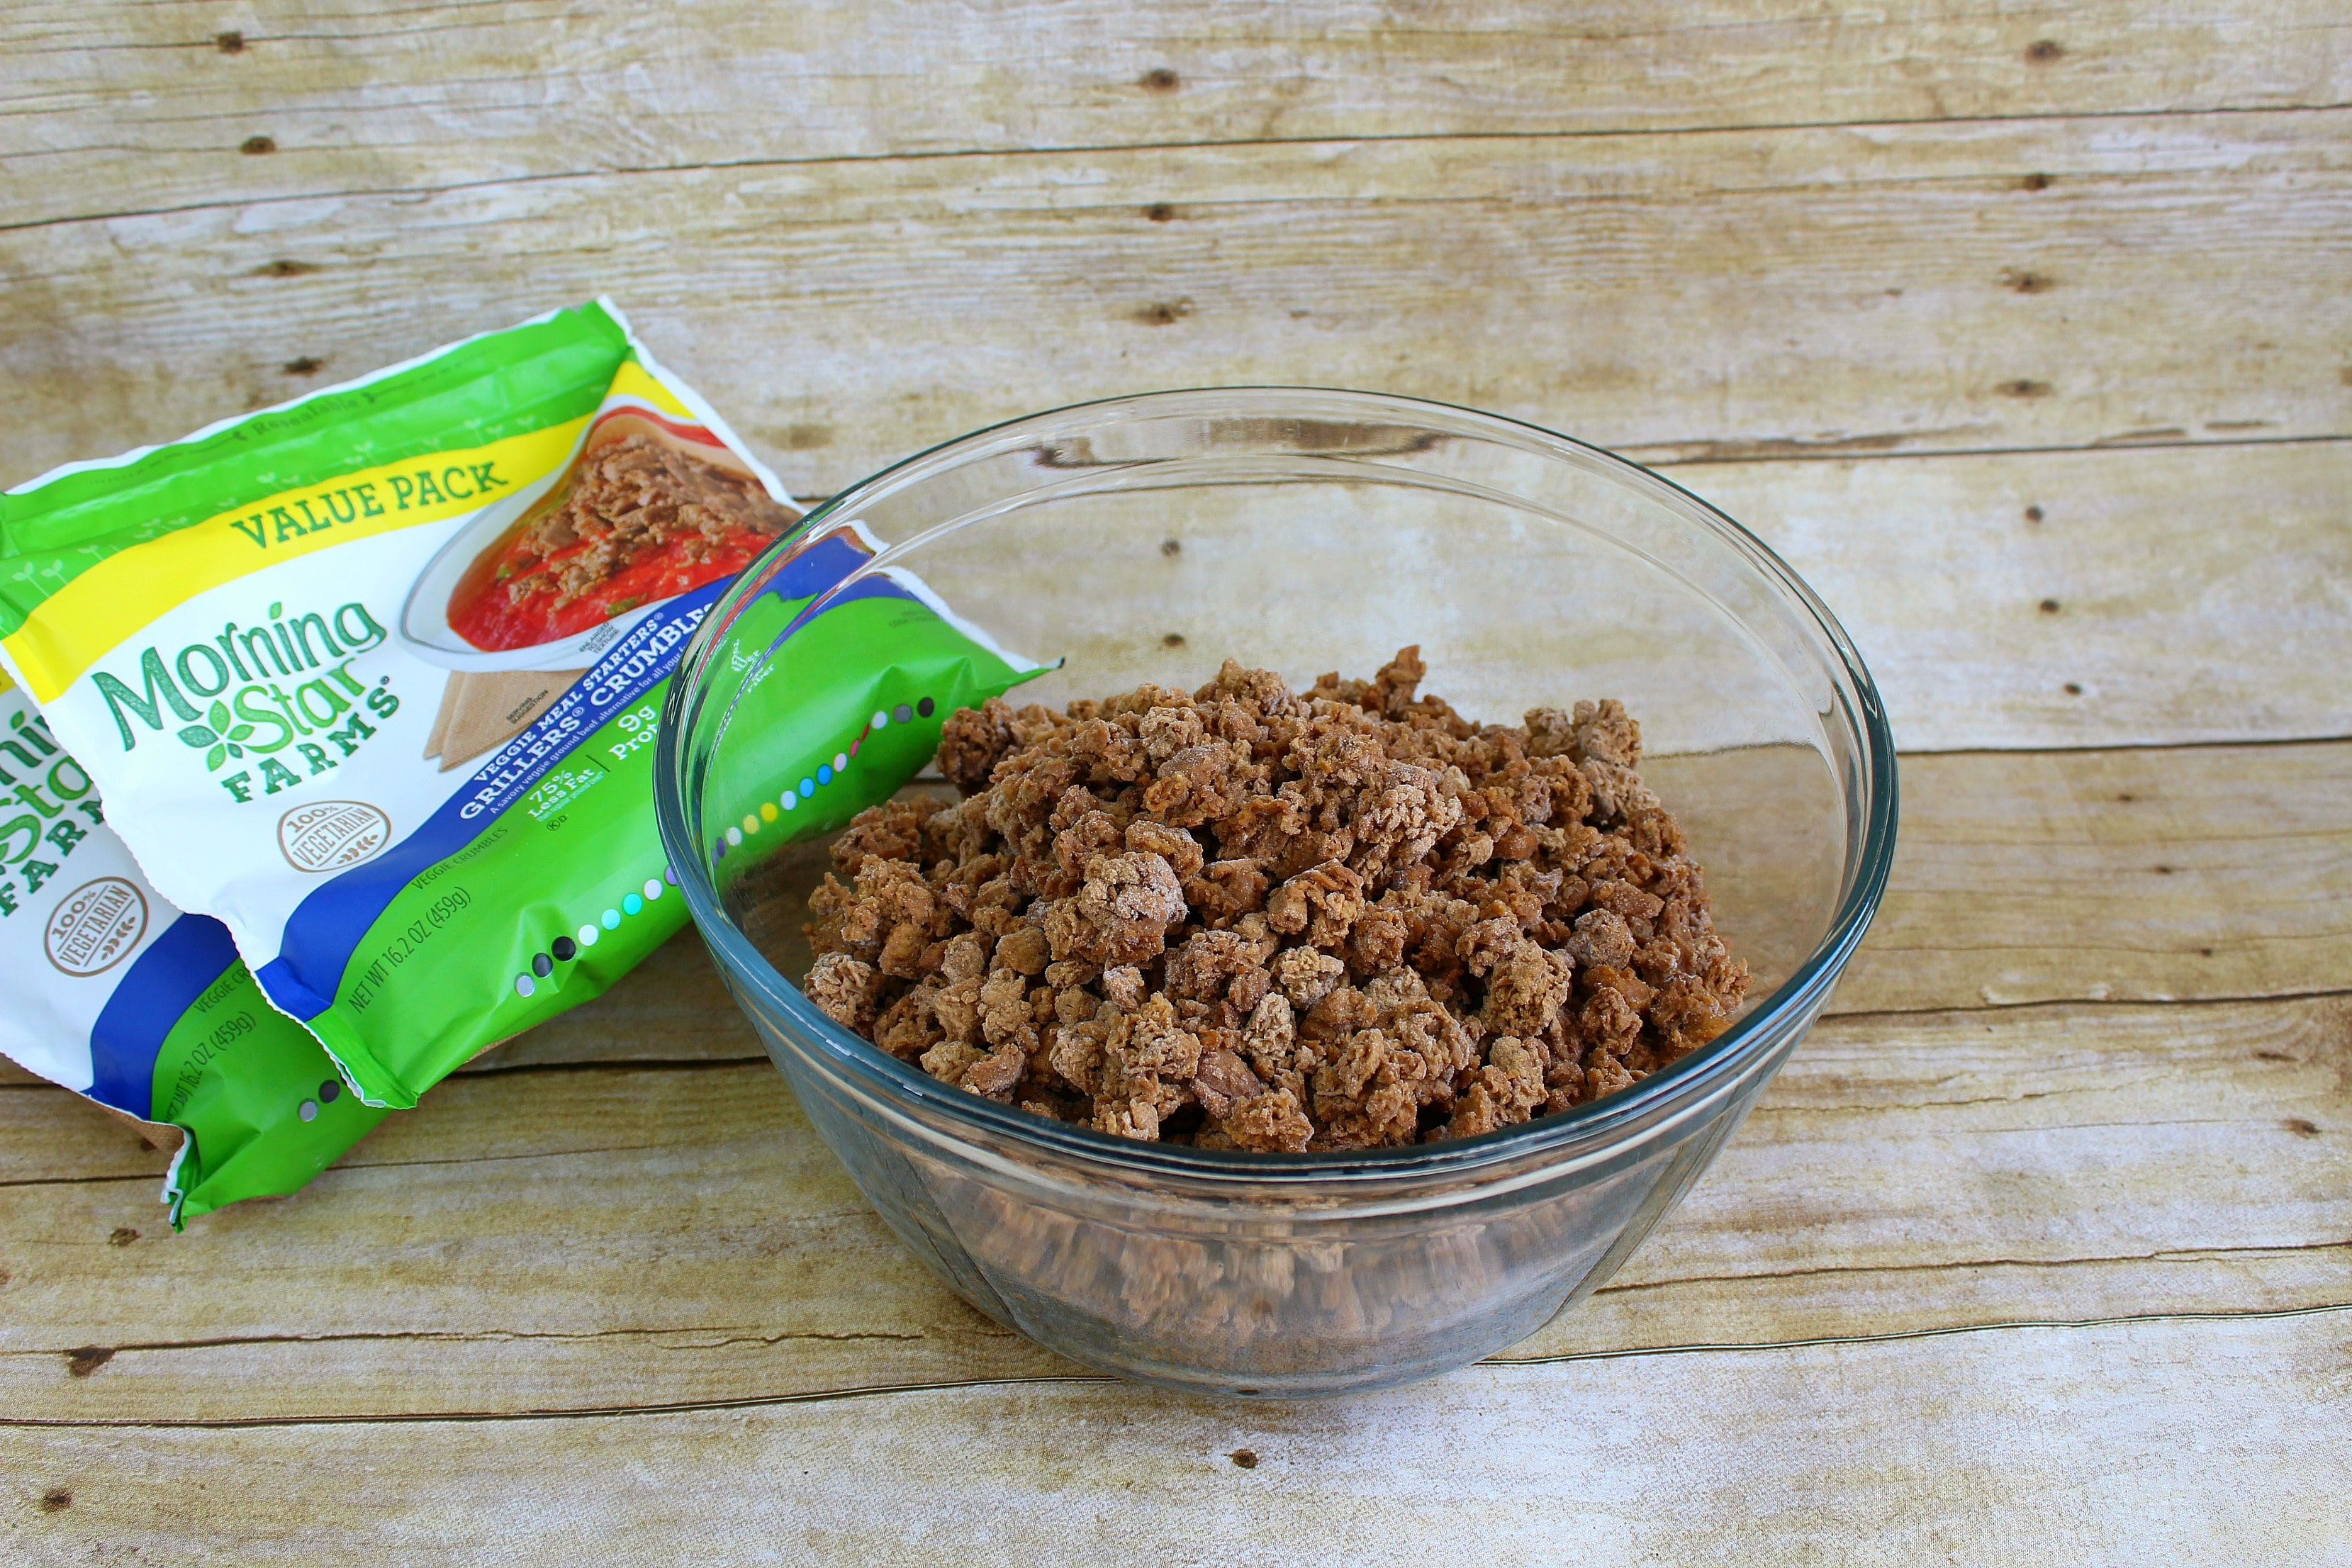 Start with Morning Start vegetarian protein crumbles.